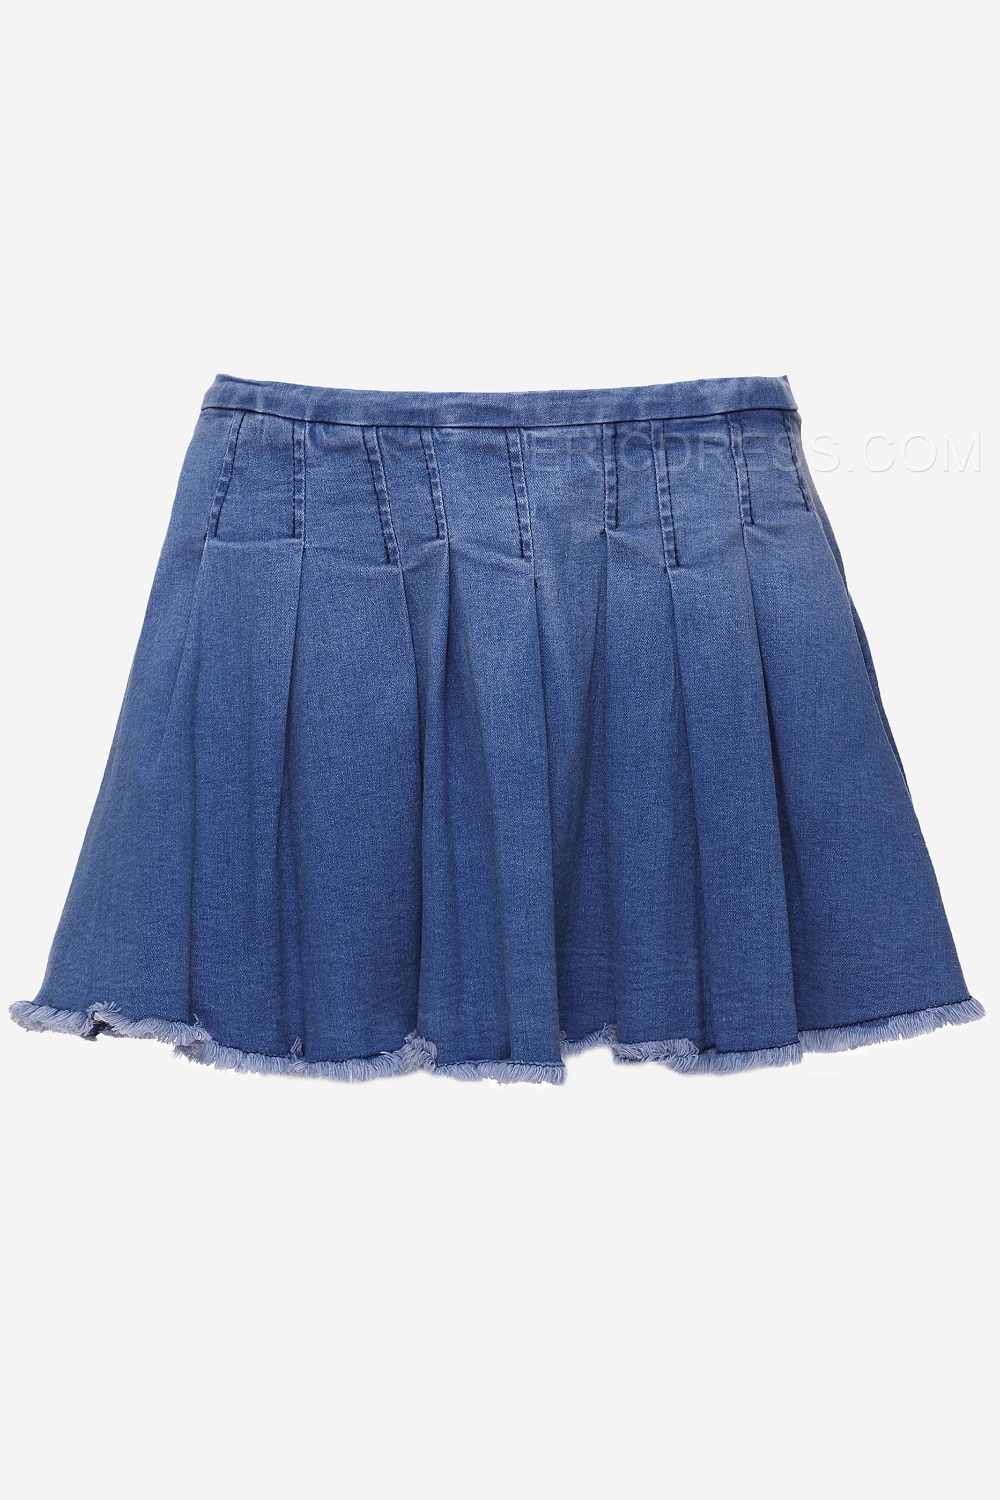 blue lace patchwork pleated mini skirt in skirts